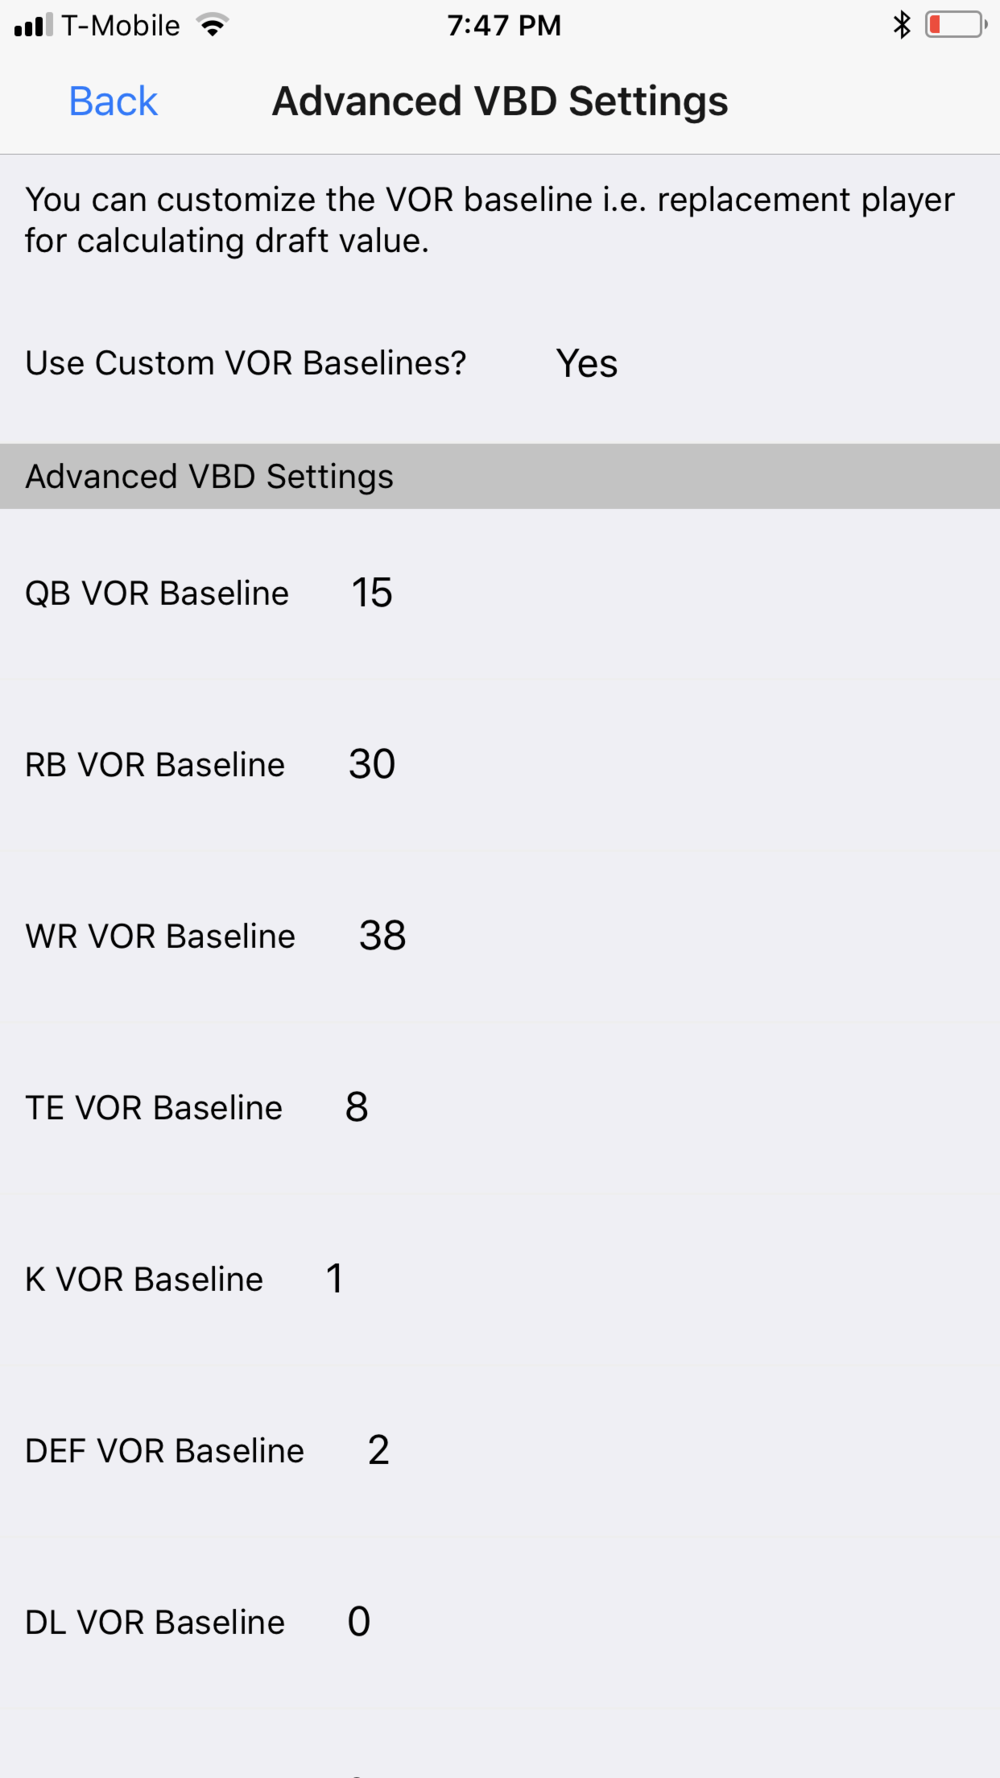 Advanced VBD Settings